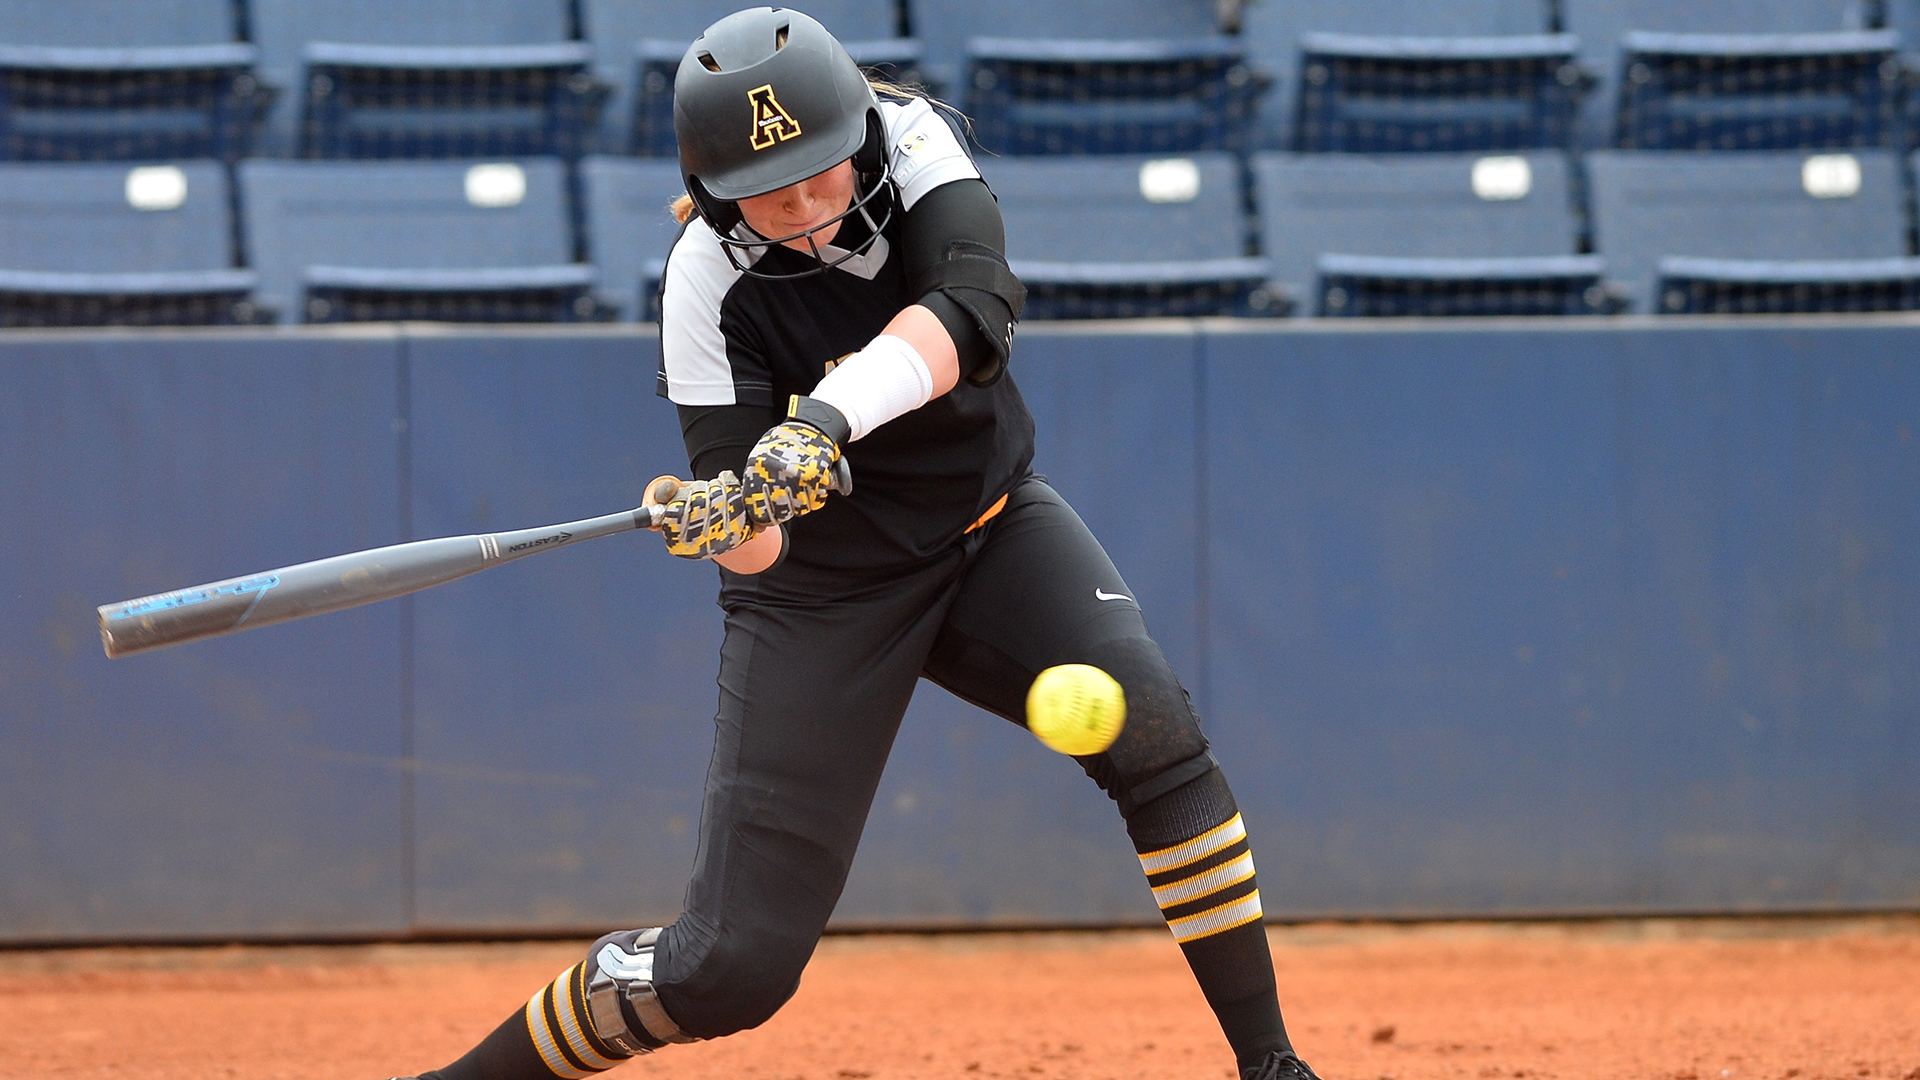 App State Opens At Home With A Doubleheader Against Tennessee Tech